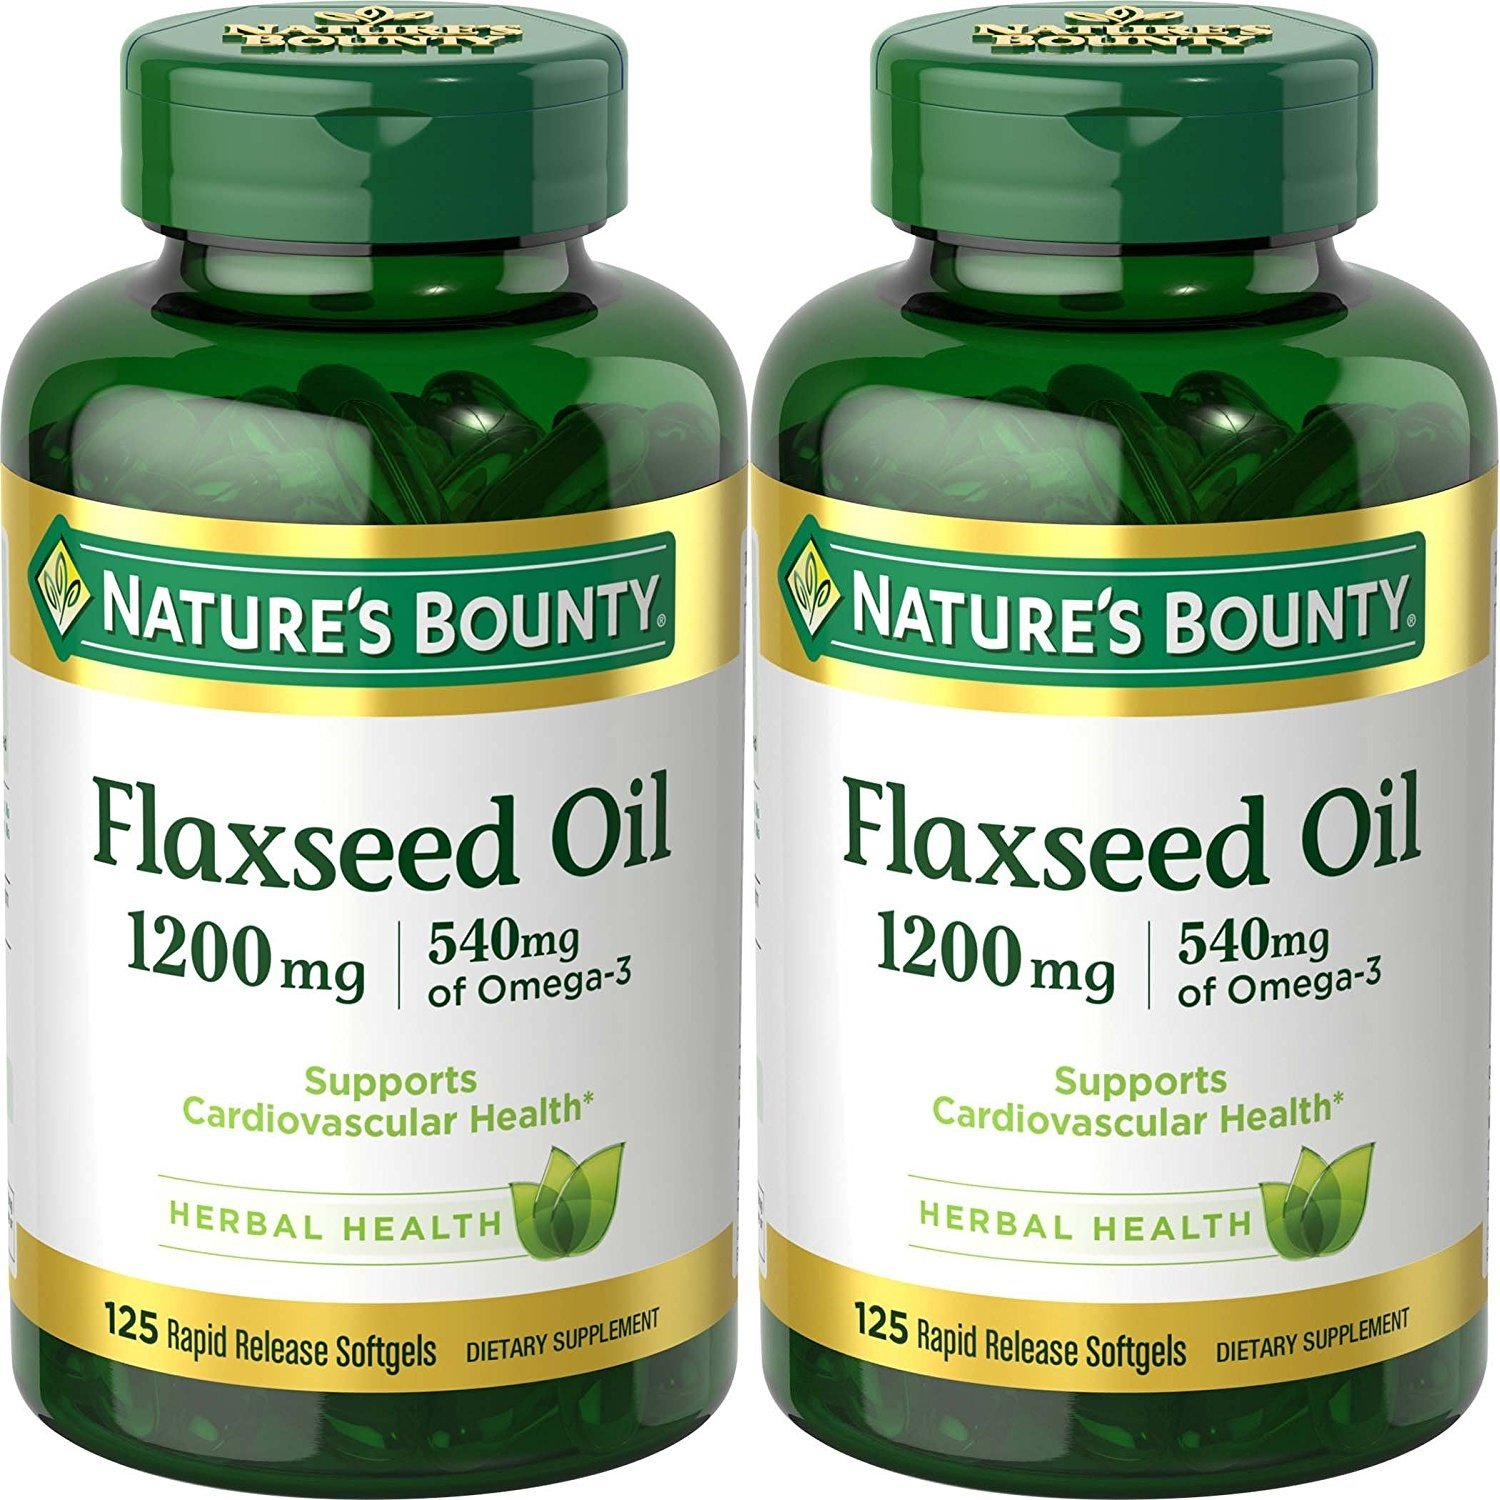 Nature's Bounty Natural Cold Pressed Flaxseed Oil, 1200mg, 250 Softgels (2 x 125 Count Bottles)